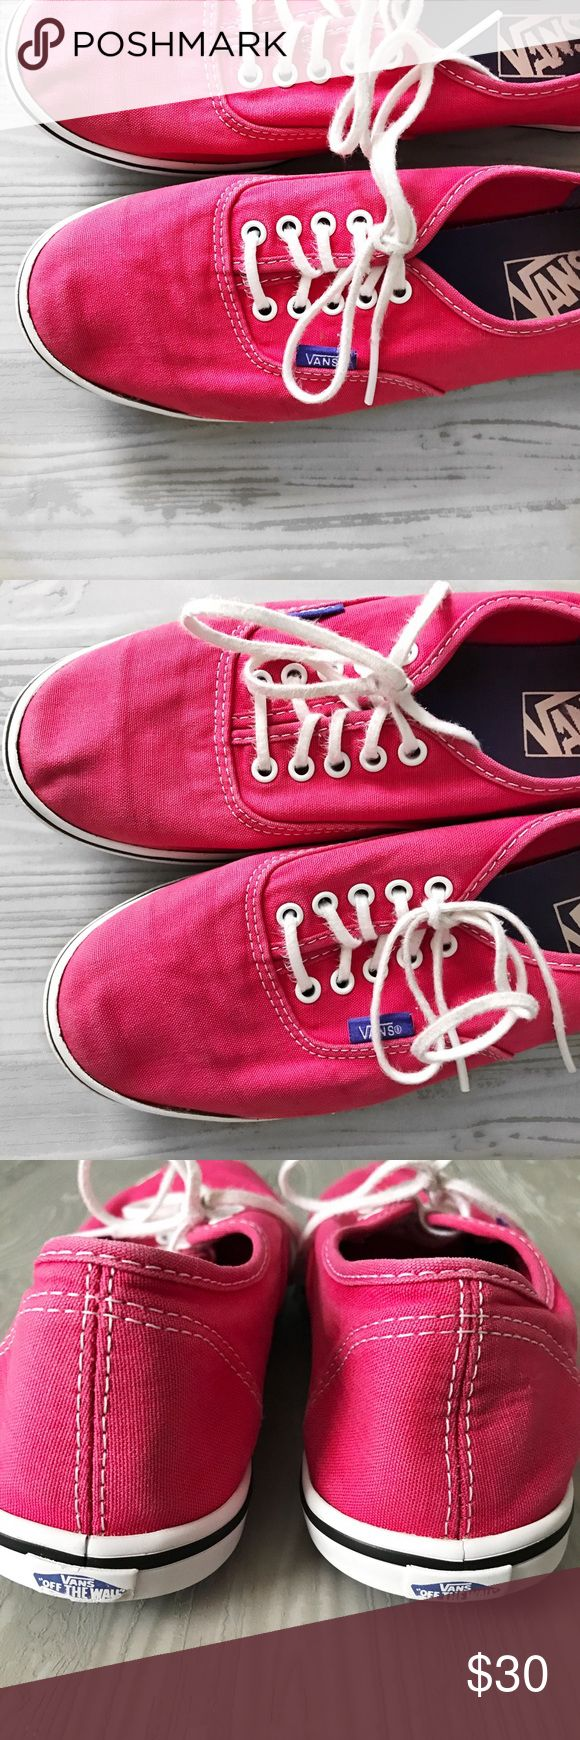 Vans Lo Pro Skate Shoe Gently used & in great condition! Men's 7, Women's 8.5 Shows tiny bits of wear, but overall in great condition ❣️ Bundle & save- I do 20% off bundles & I do accept offers ❣️ Vans Shoes Sneakers